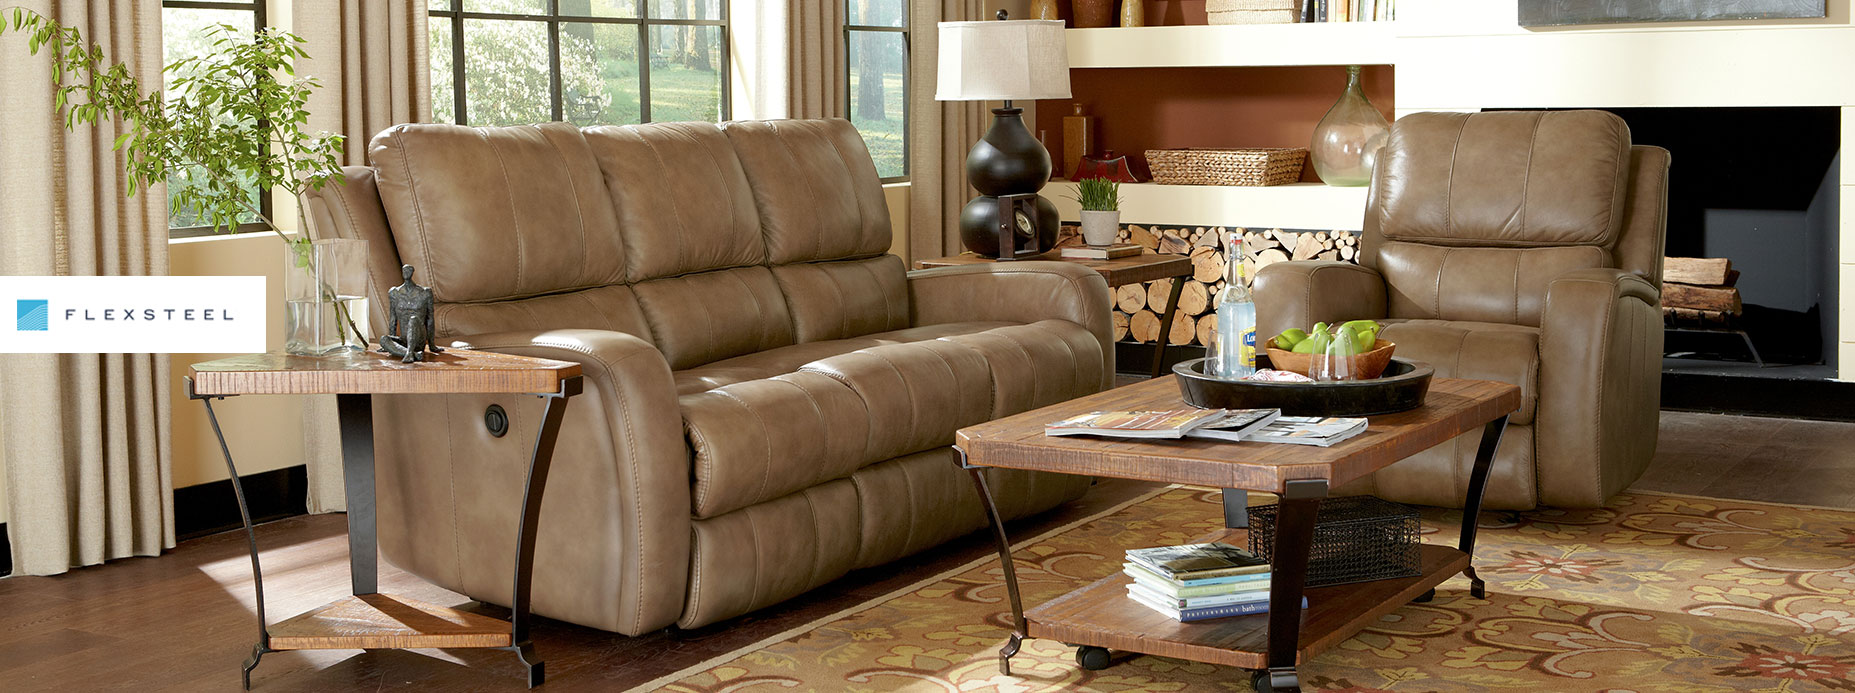 flexsteel furniture discount store and showroom in hickory nc 28602 - Living Room Furniture Discount Stores